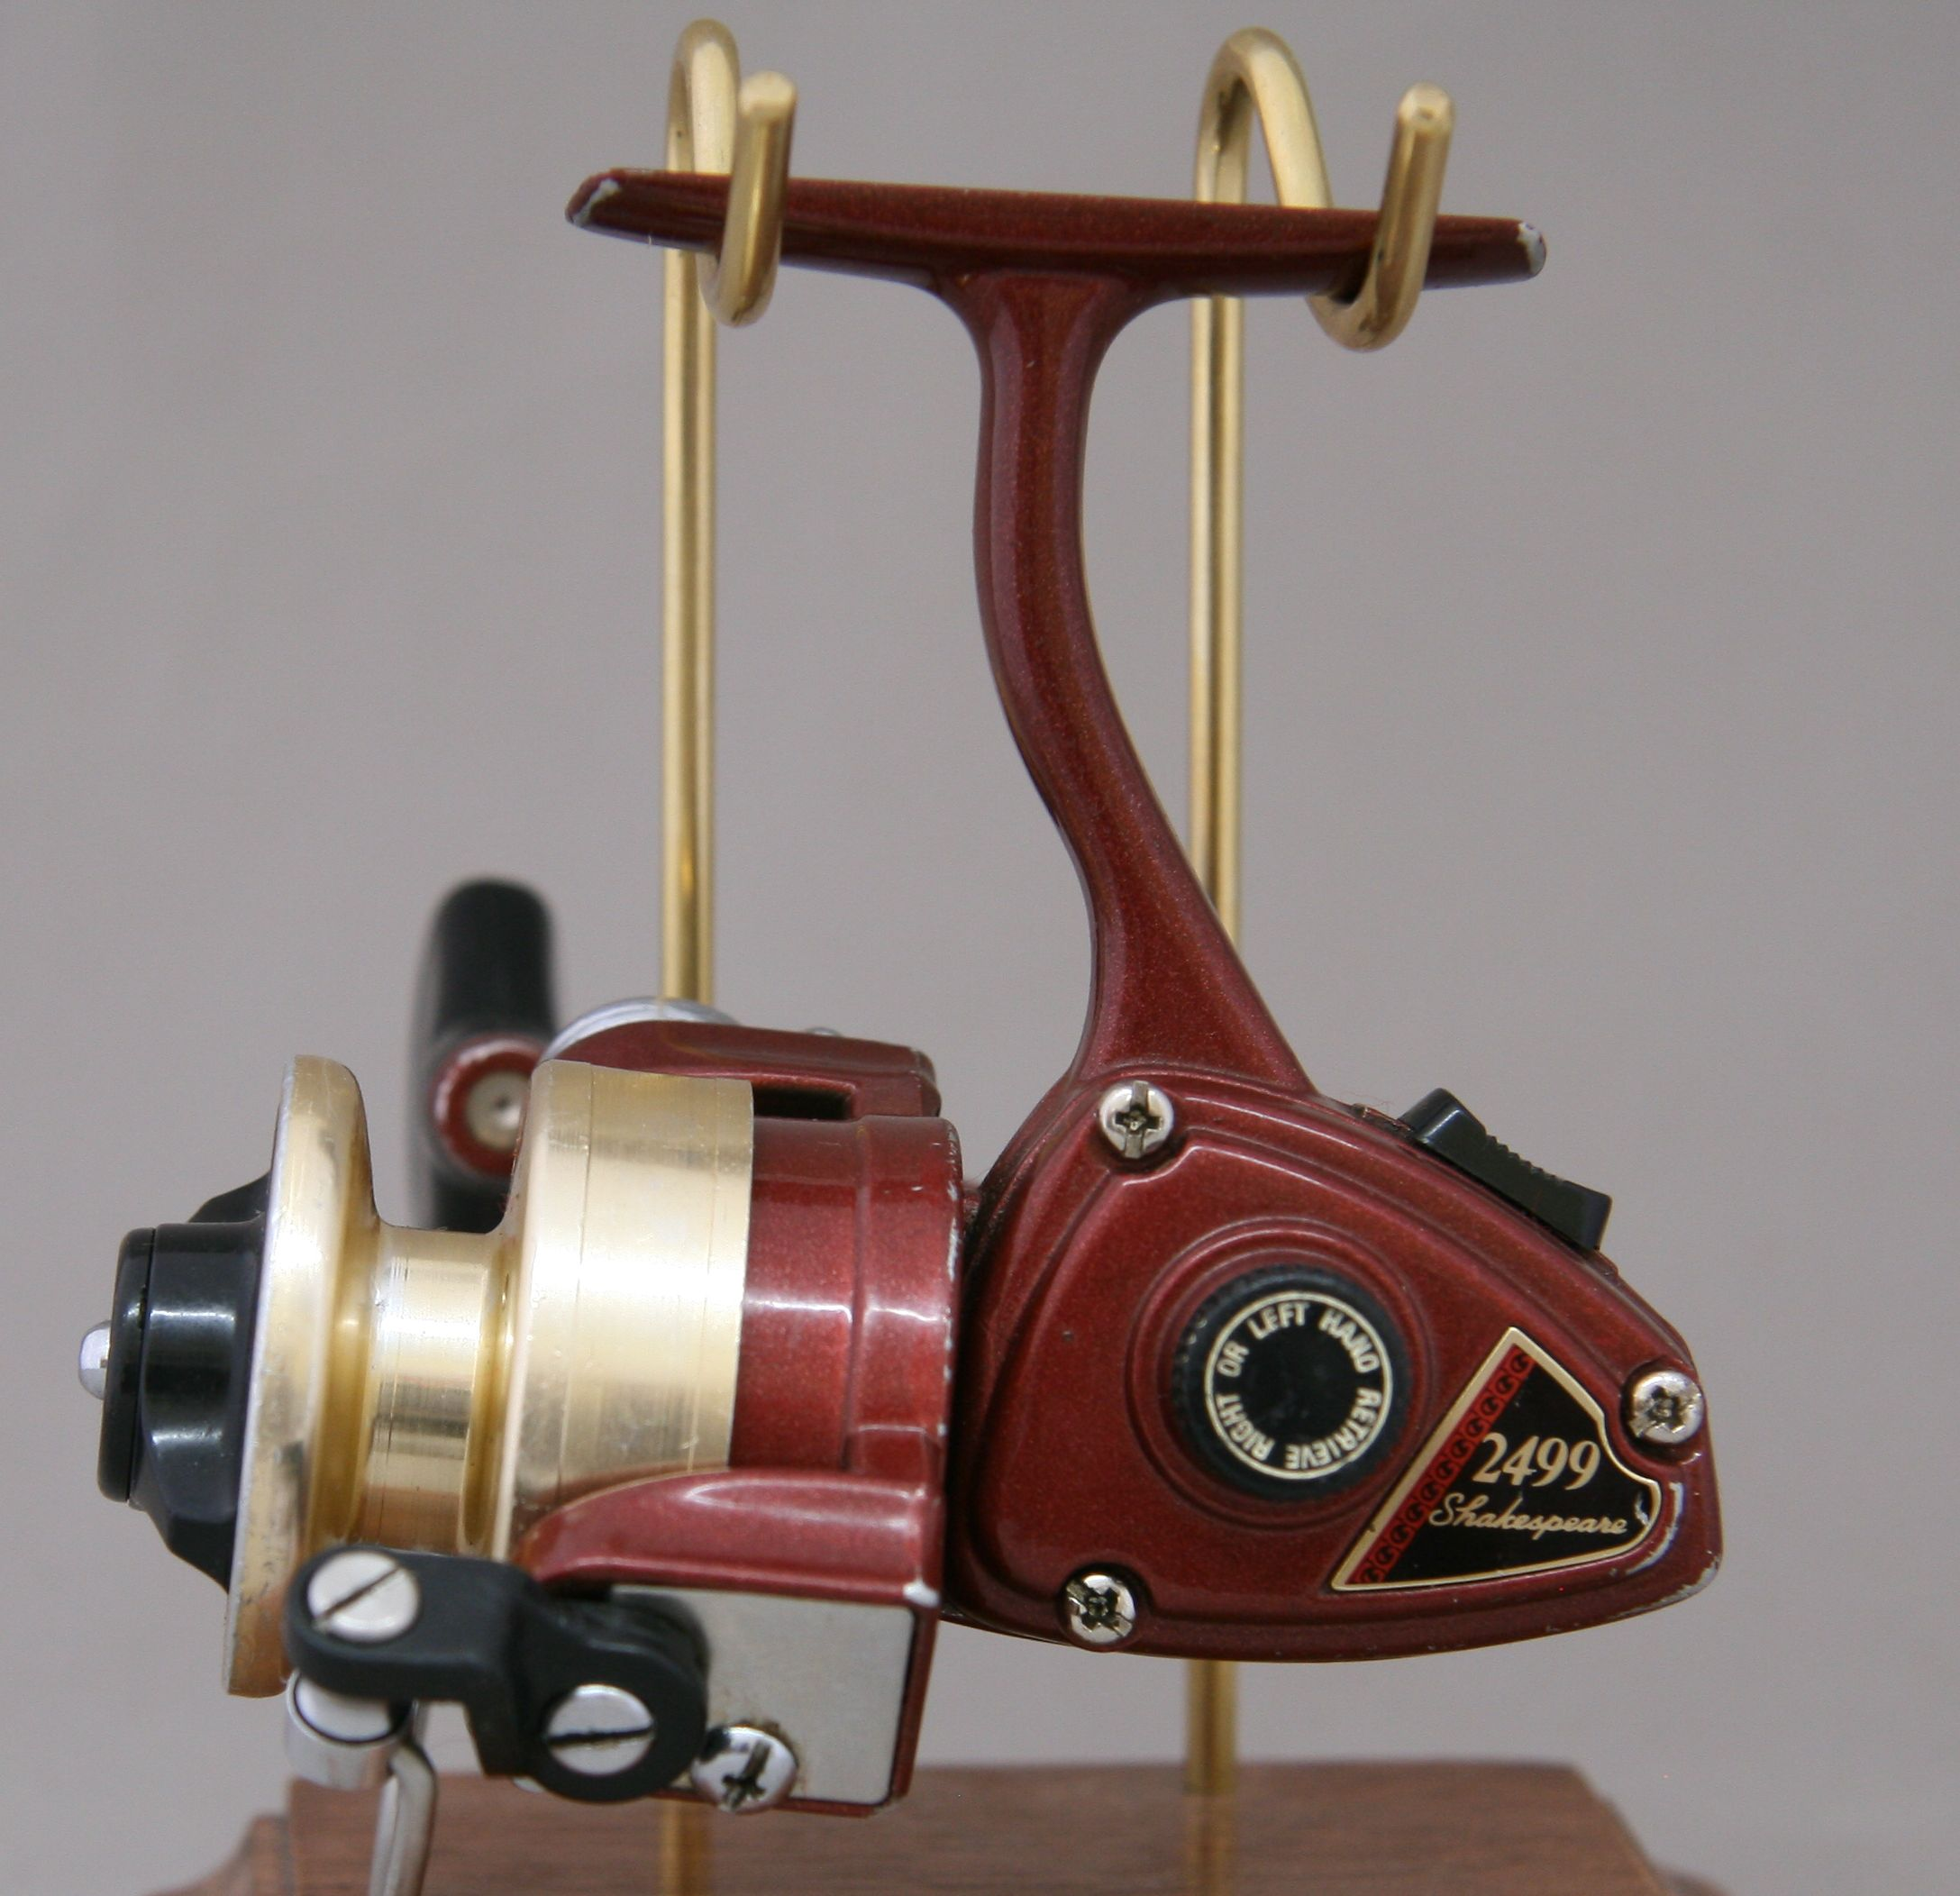 Rick S Rods Vintage Fly Fishing Rods And Reels Denver